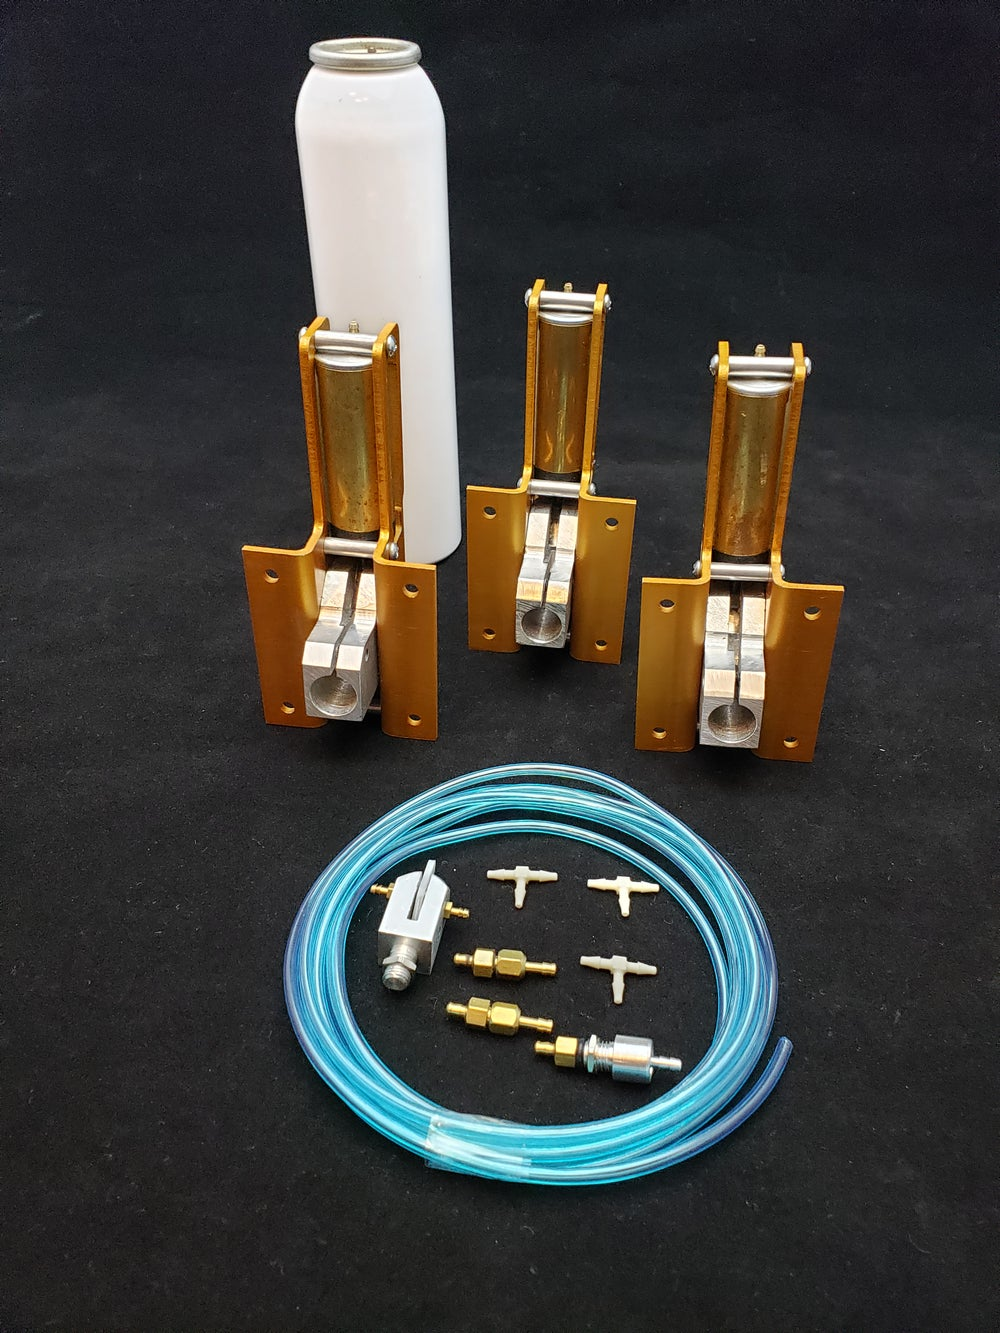 Image of 1/5 scale complete three gear set with 110deg nose unit and 85deg mains great Cessna kits